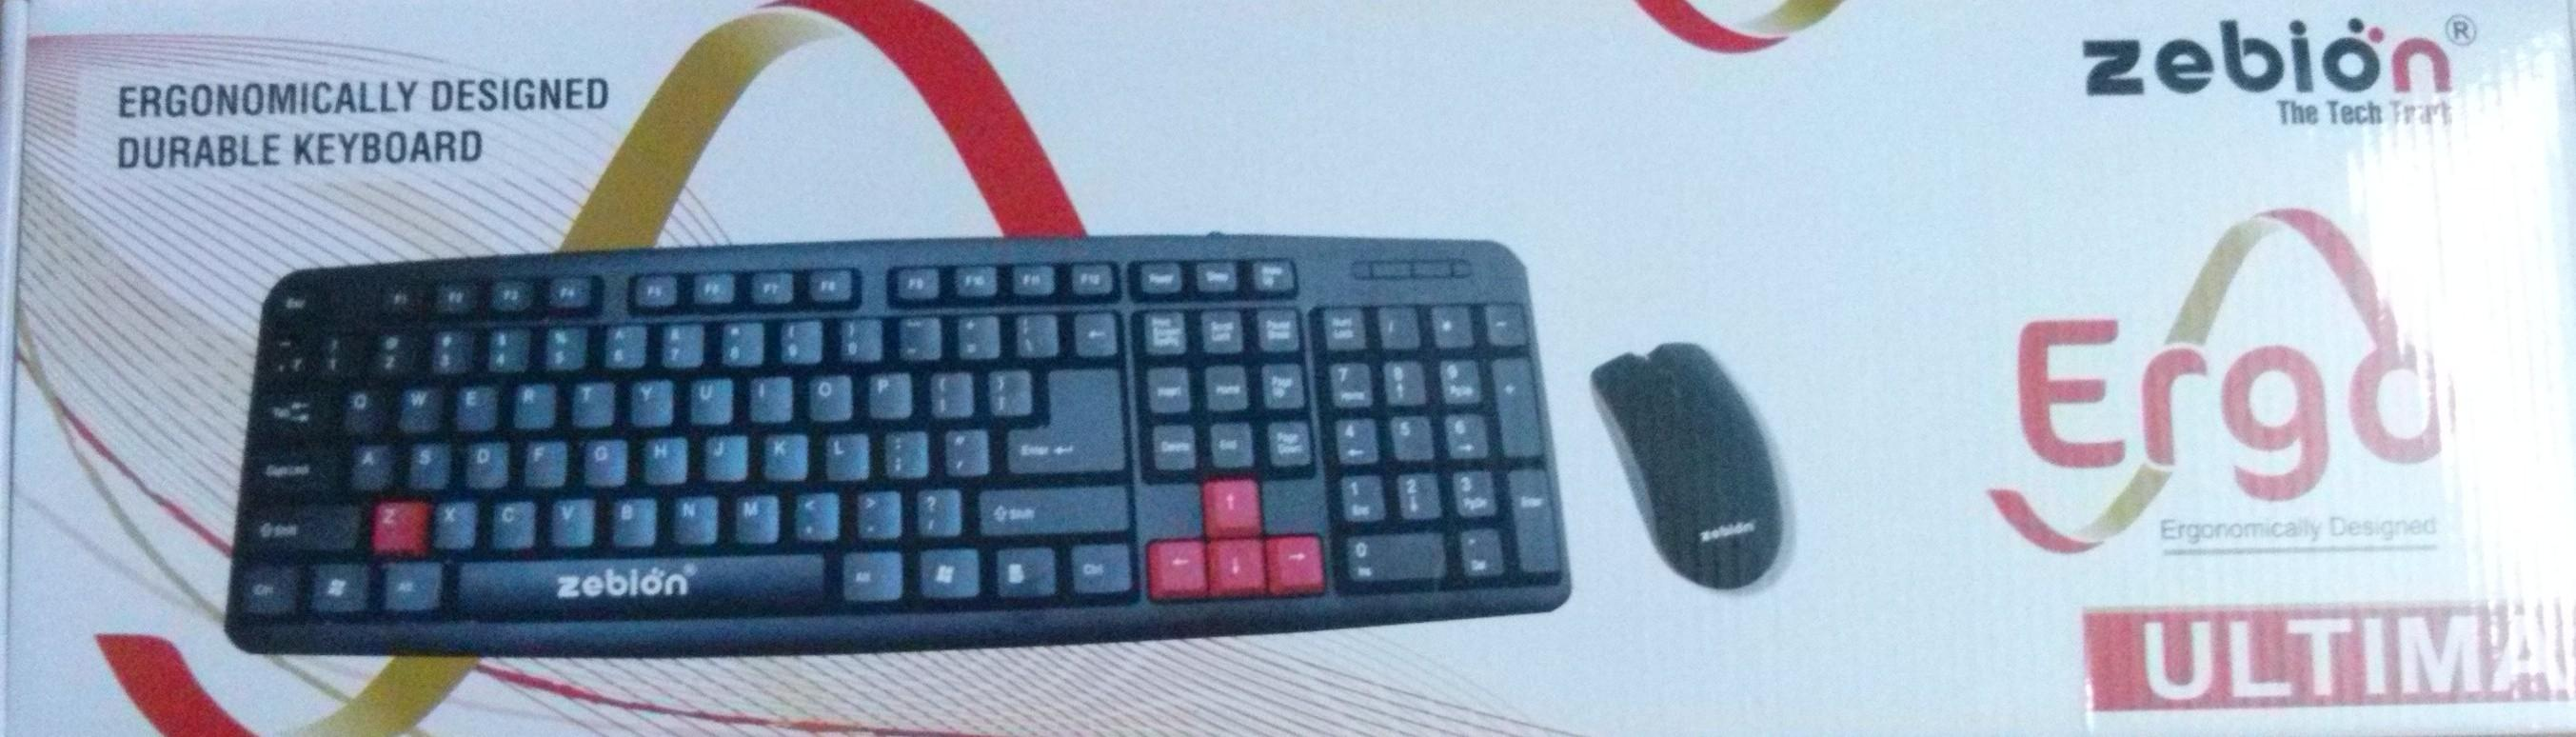 Zebion Ergo Ultima Wired USB Keyboard & Mouse Combo Price In ...